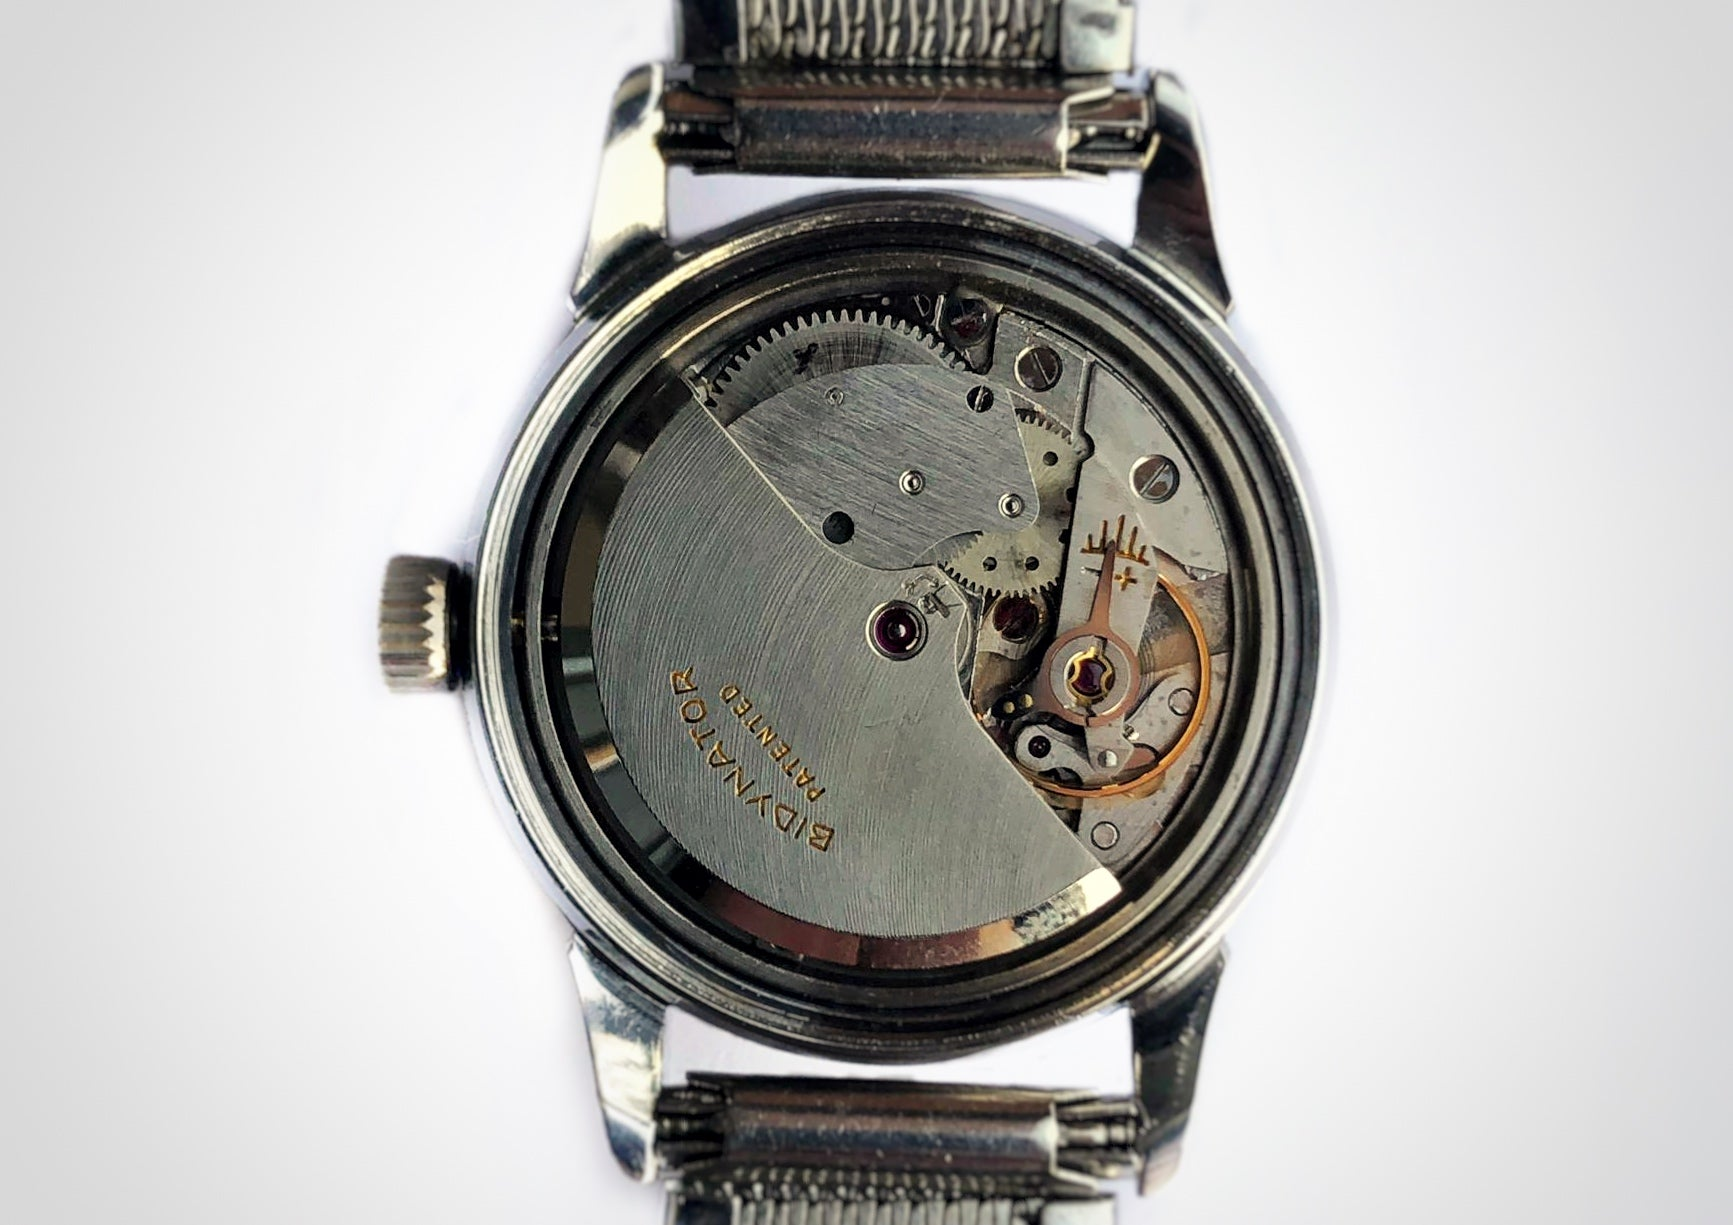 Movement picture of Stainless steel vintage luxury watch with blued indices, made by the brand Beyer. Rotor for automatic winding is visible, bidynator is written on rotor